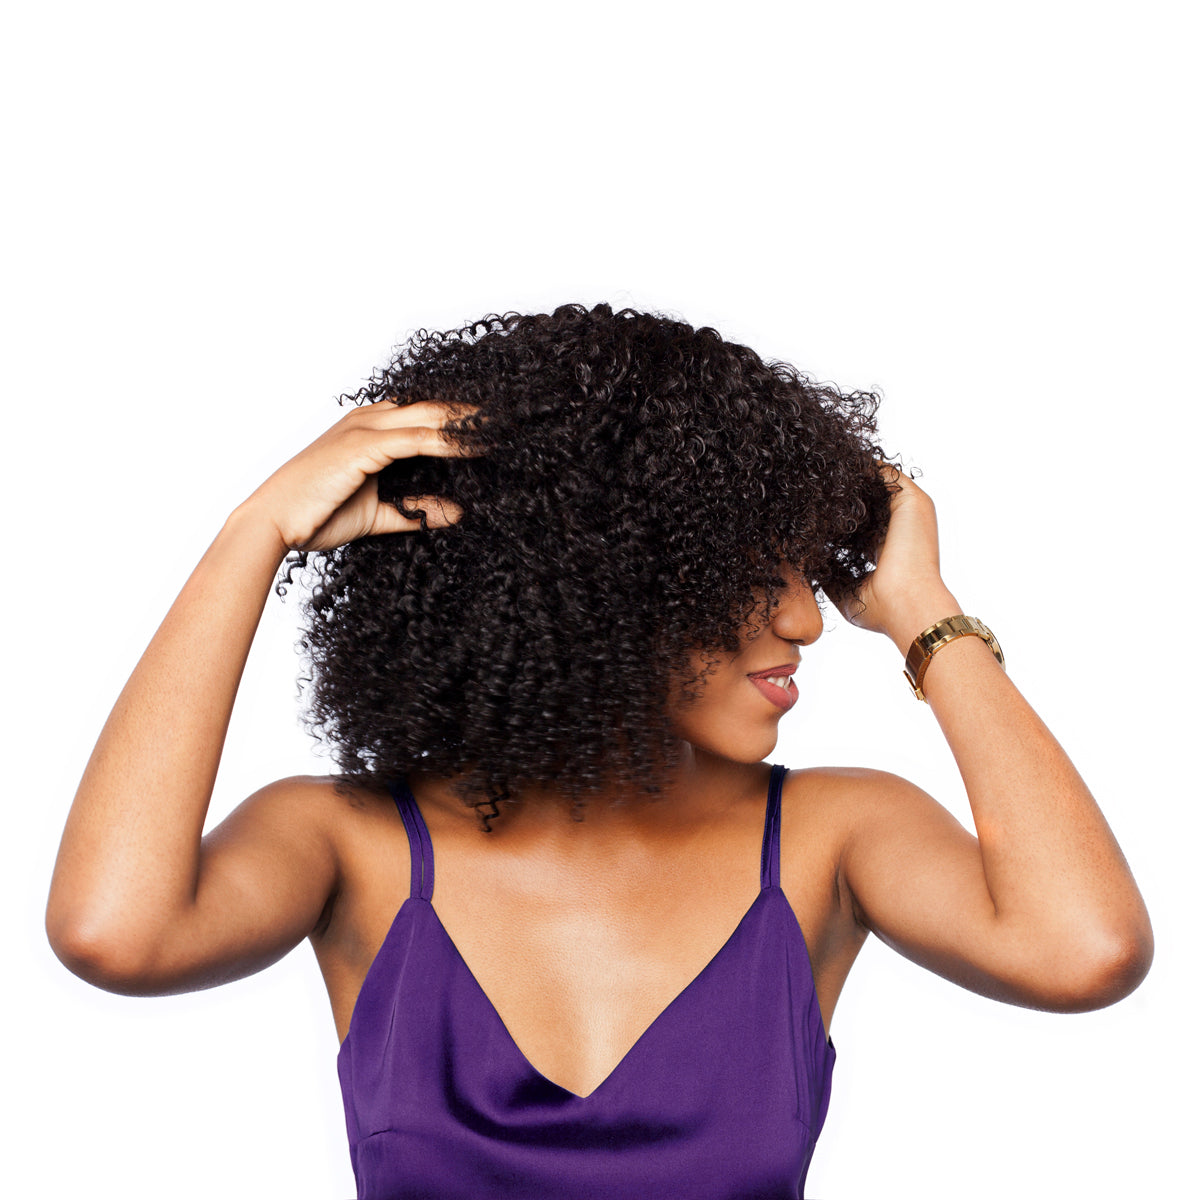 Kinky curly hairstyles give you beautifully defined curls to complete any look